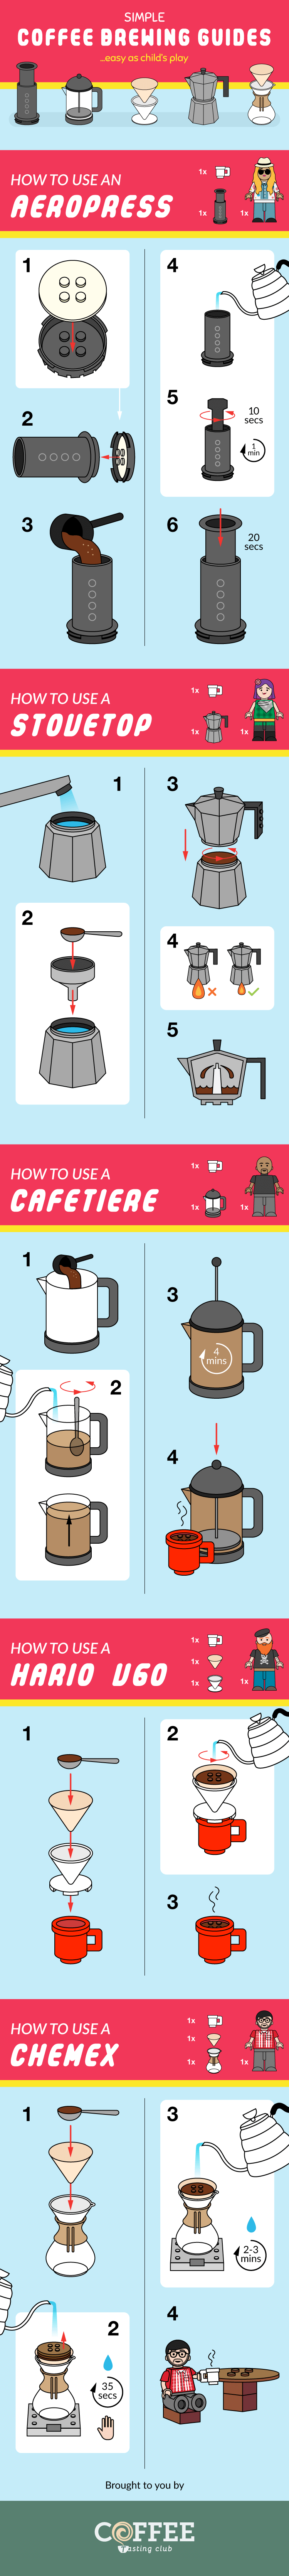 Simple Coffee Brewing Guides: How To Brew Coffee At Home #Infographic